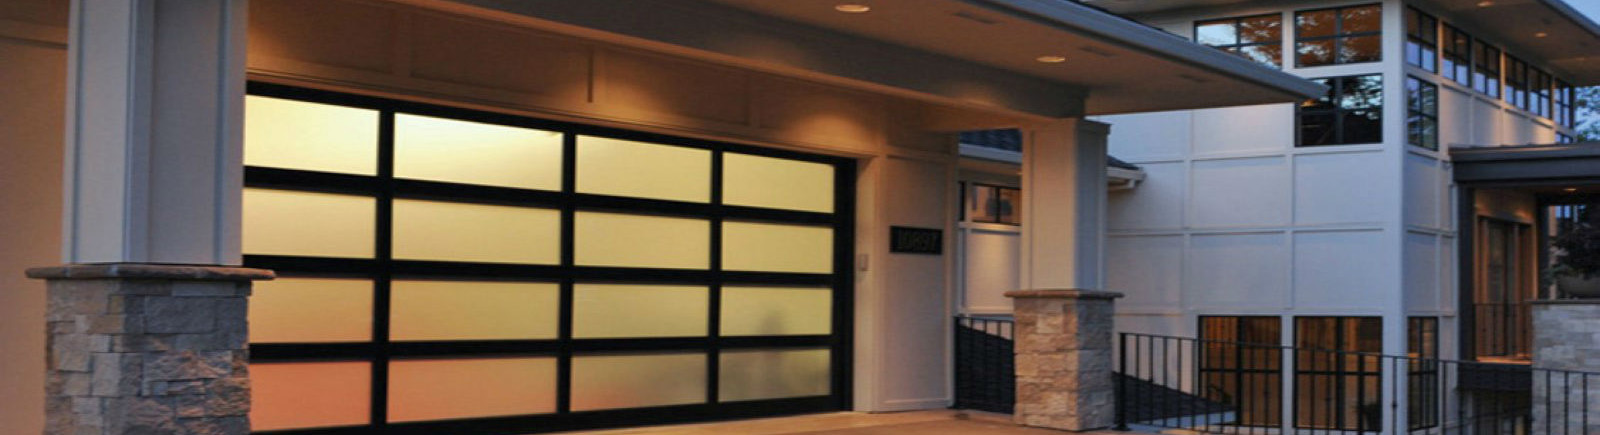 Affordable Garage Doors Manufacture Repairs Installations